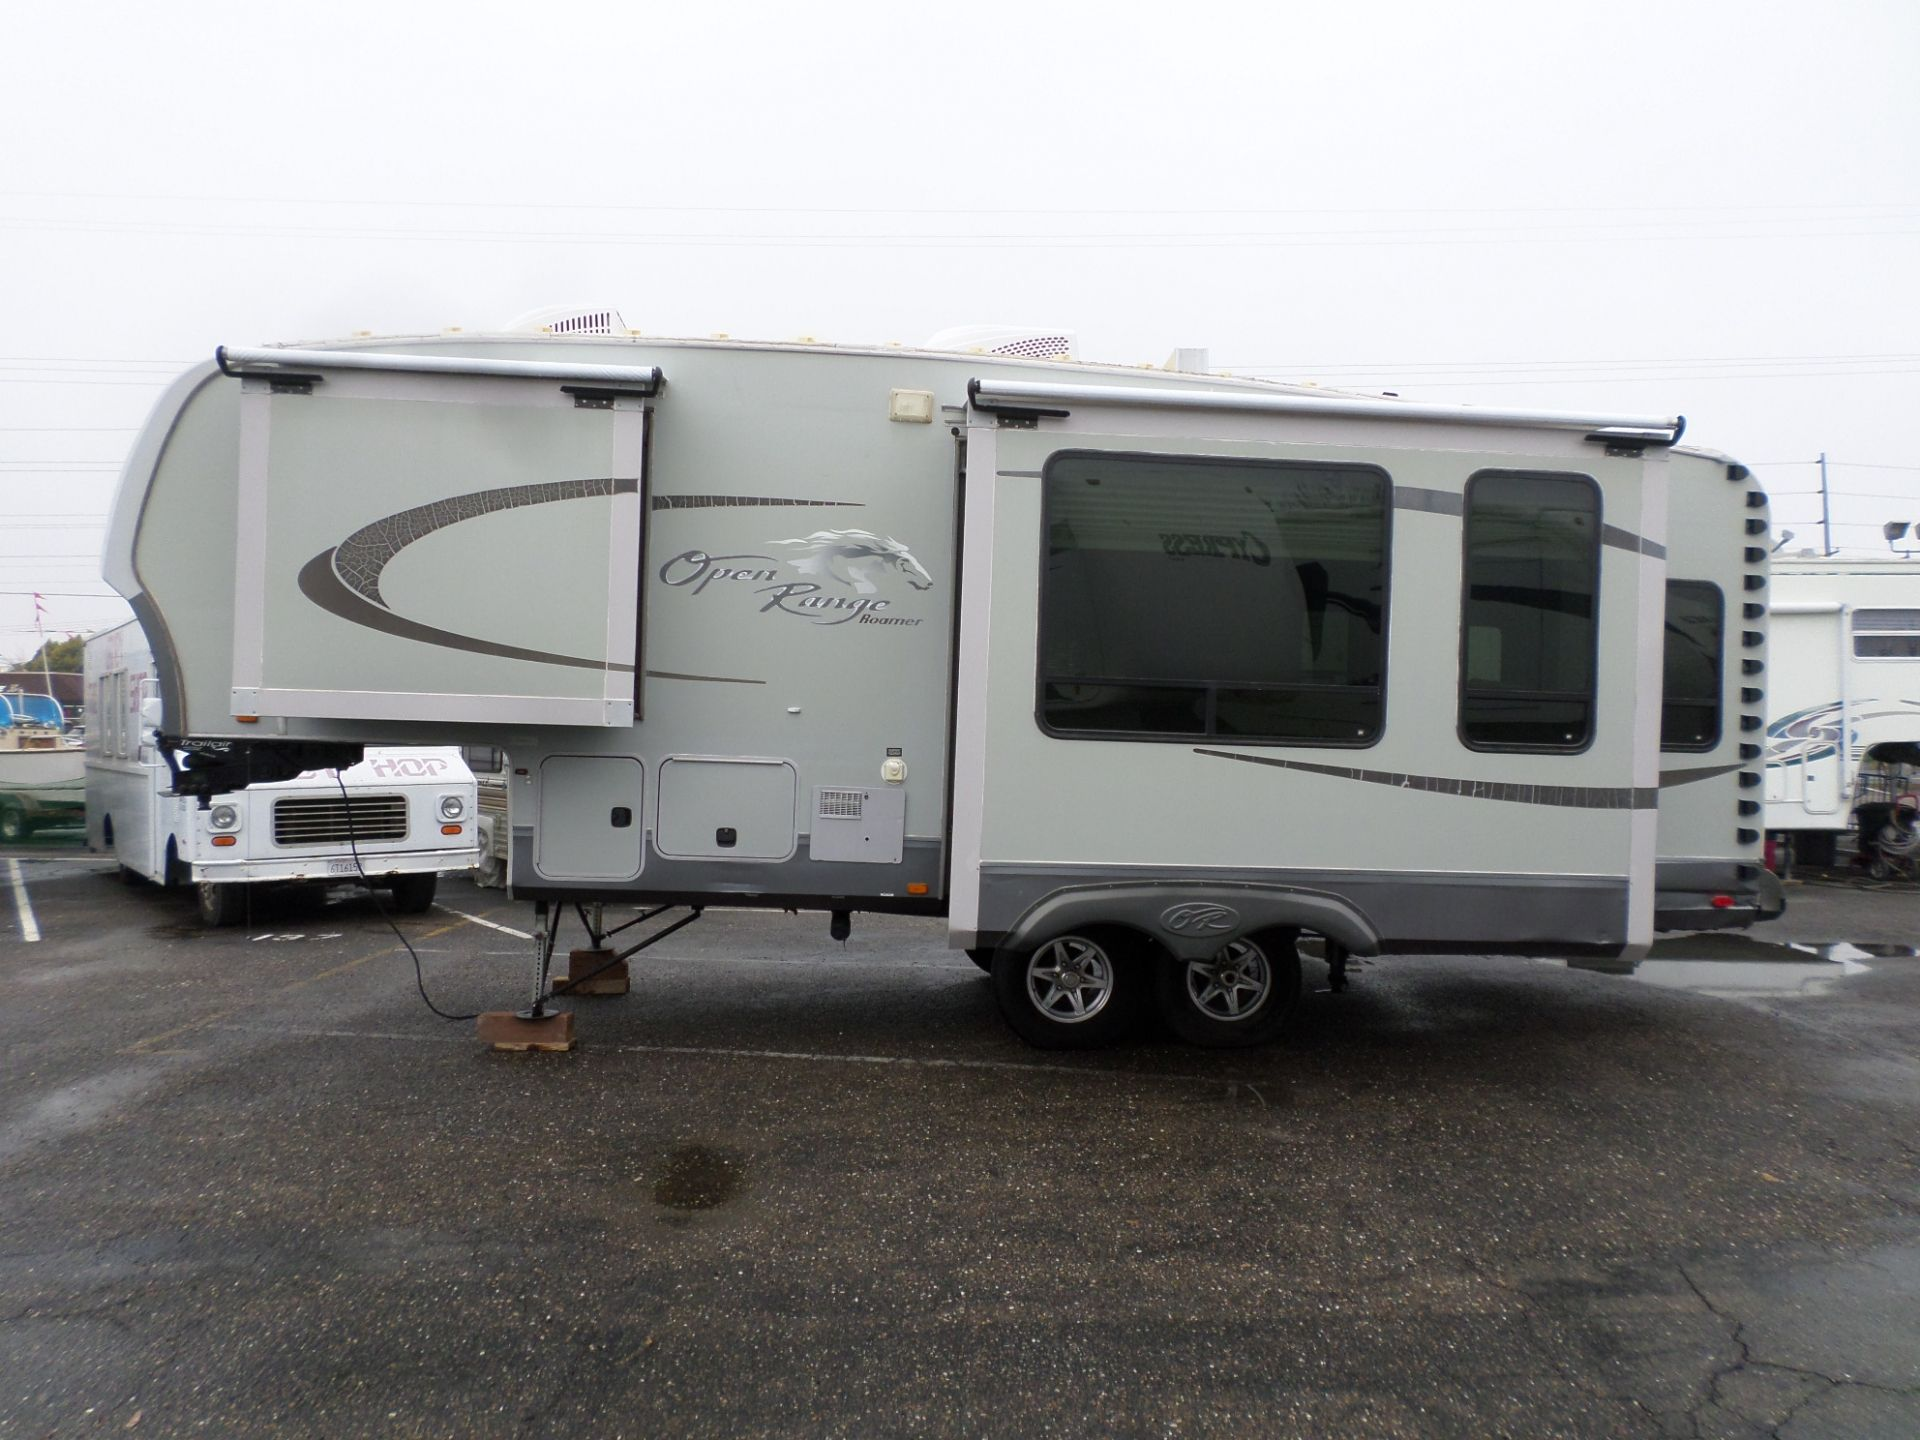 Rv For Sale 2011 Open Range Roamer 5th Wheel 28 In Lodi Stockton Ca Open Range Rv For Sale 5th Wheels For Sale